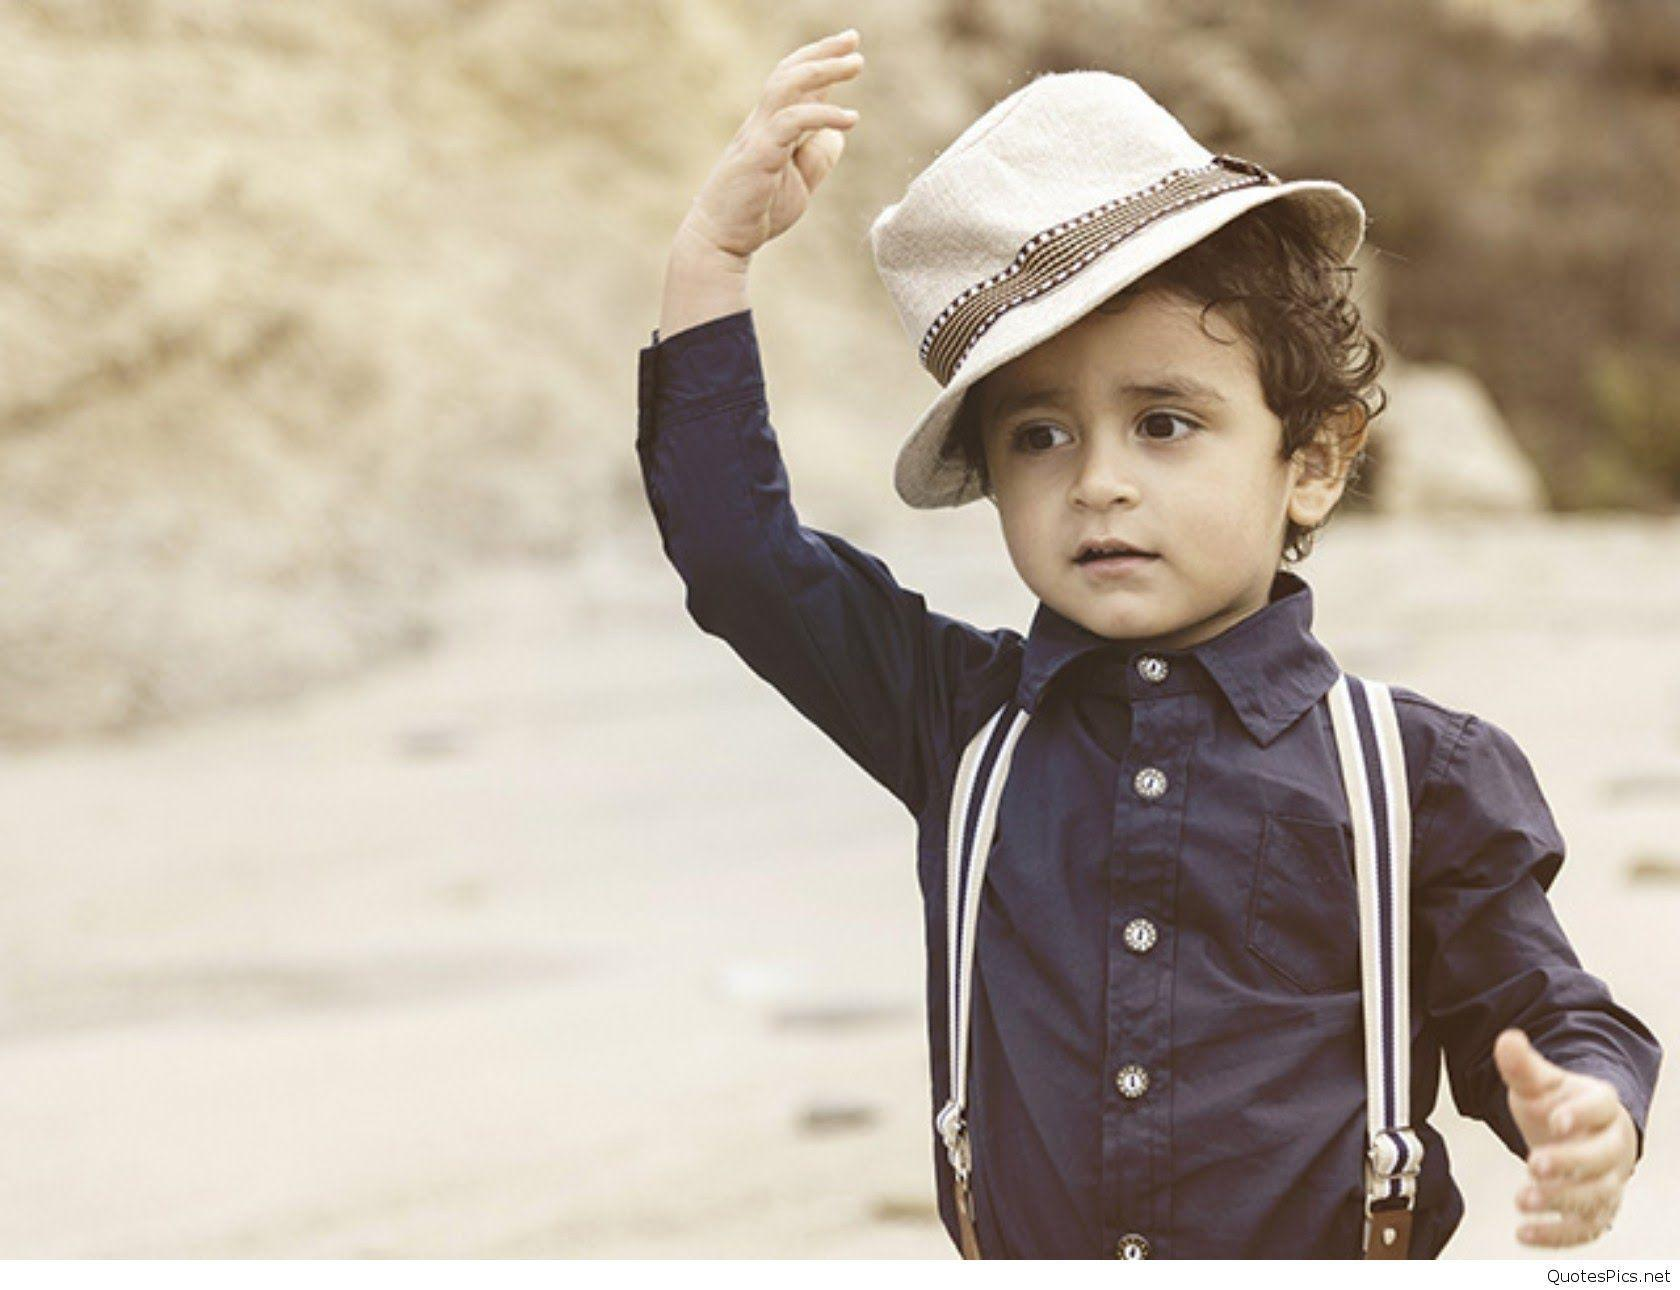 40 Cute Baby Boy Images, Photos, Pictures and Wallpapers